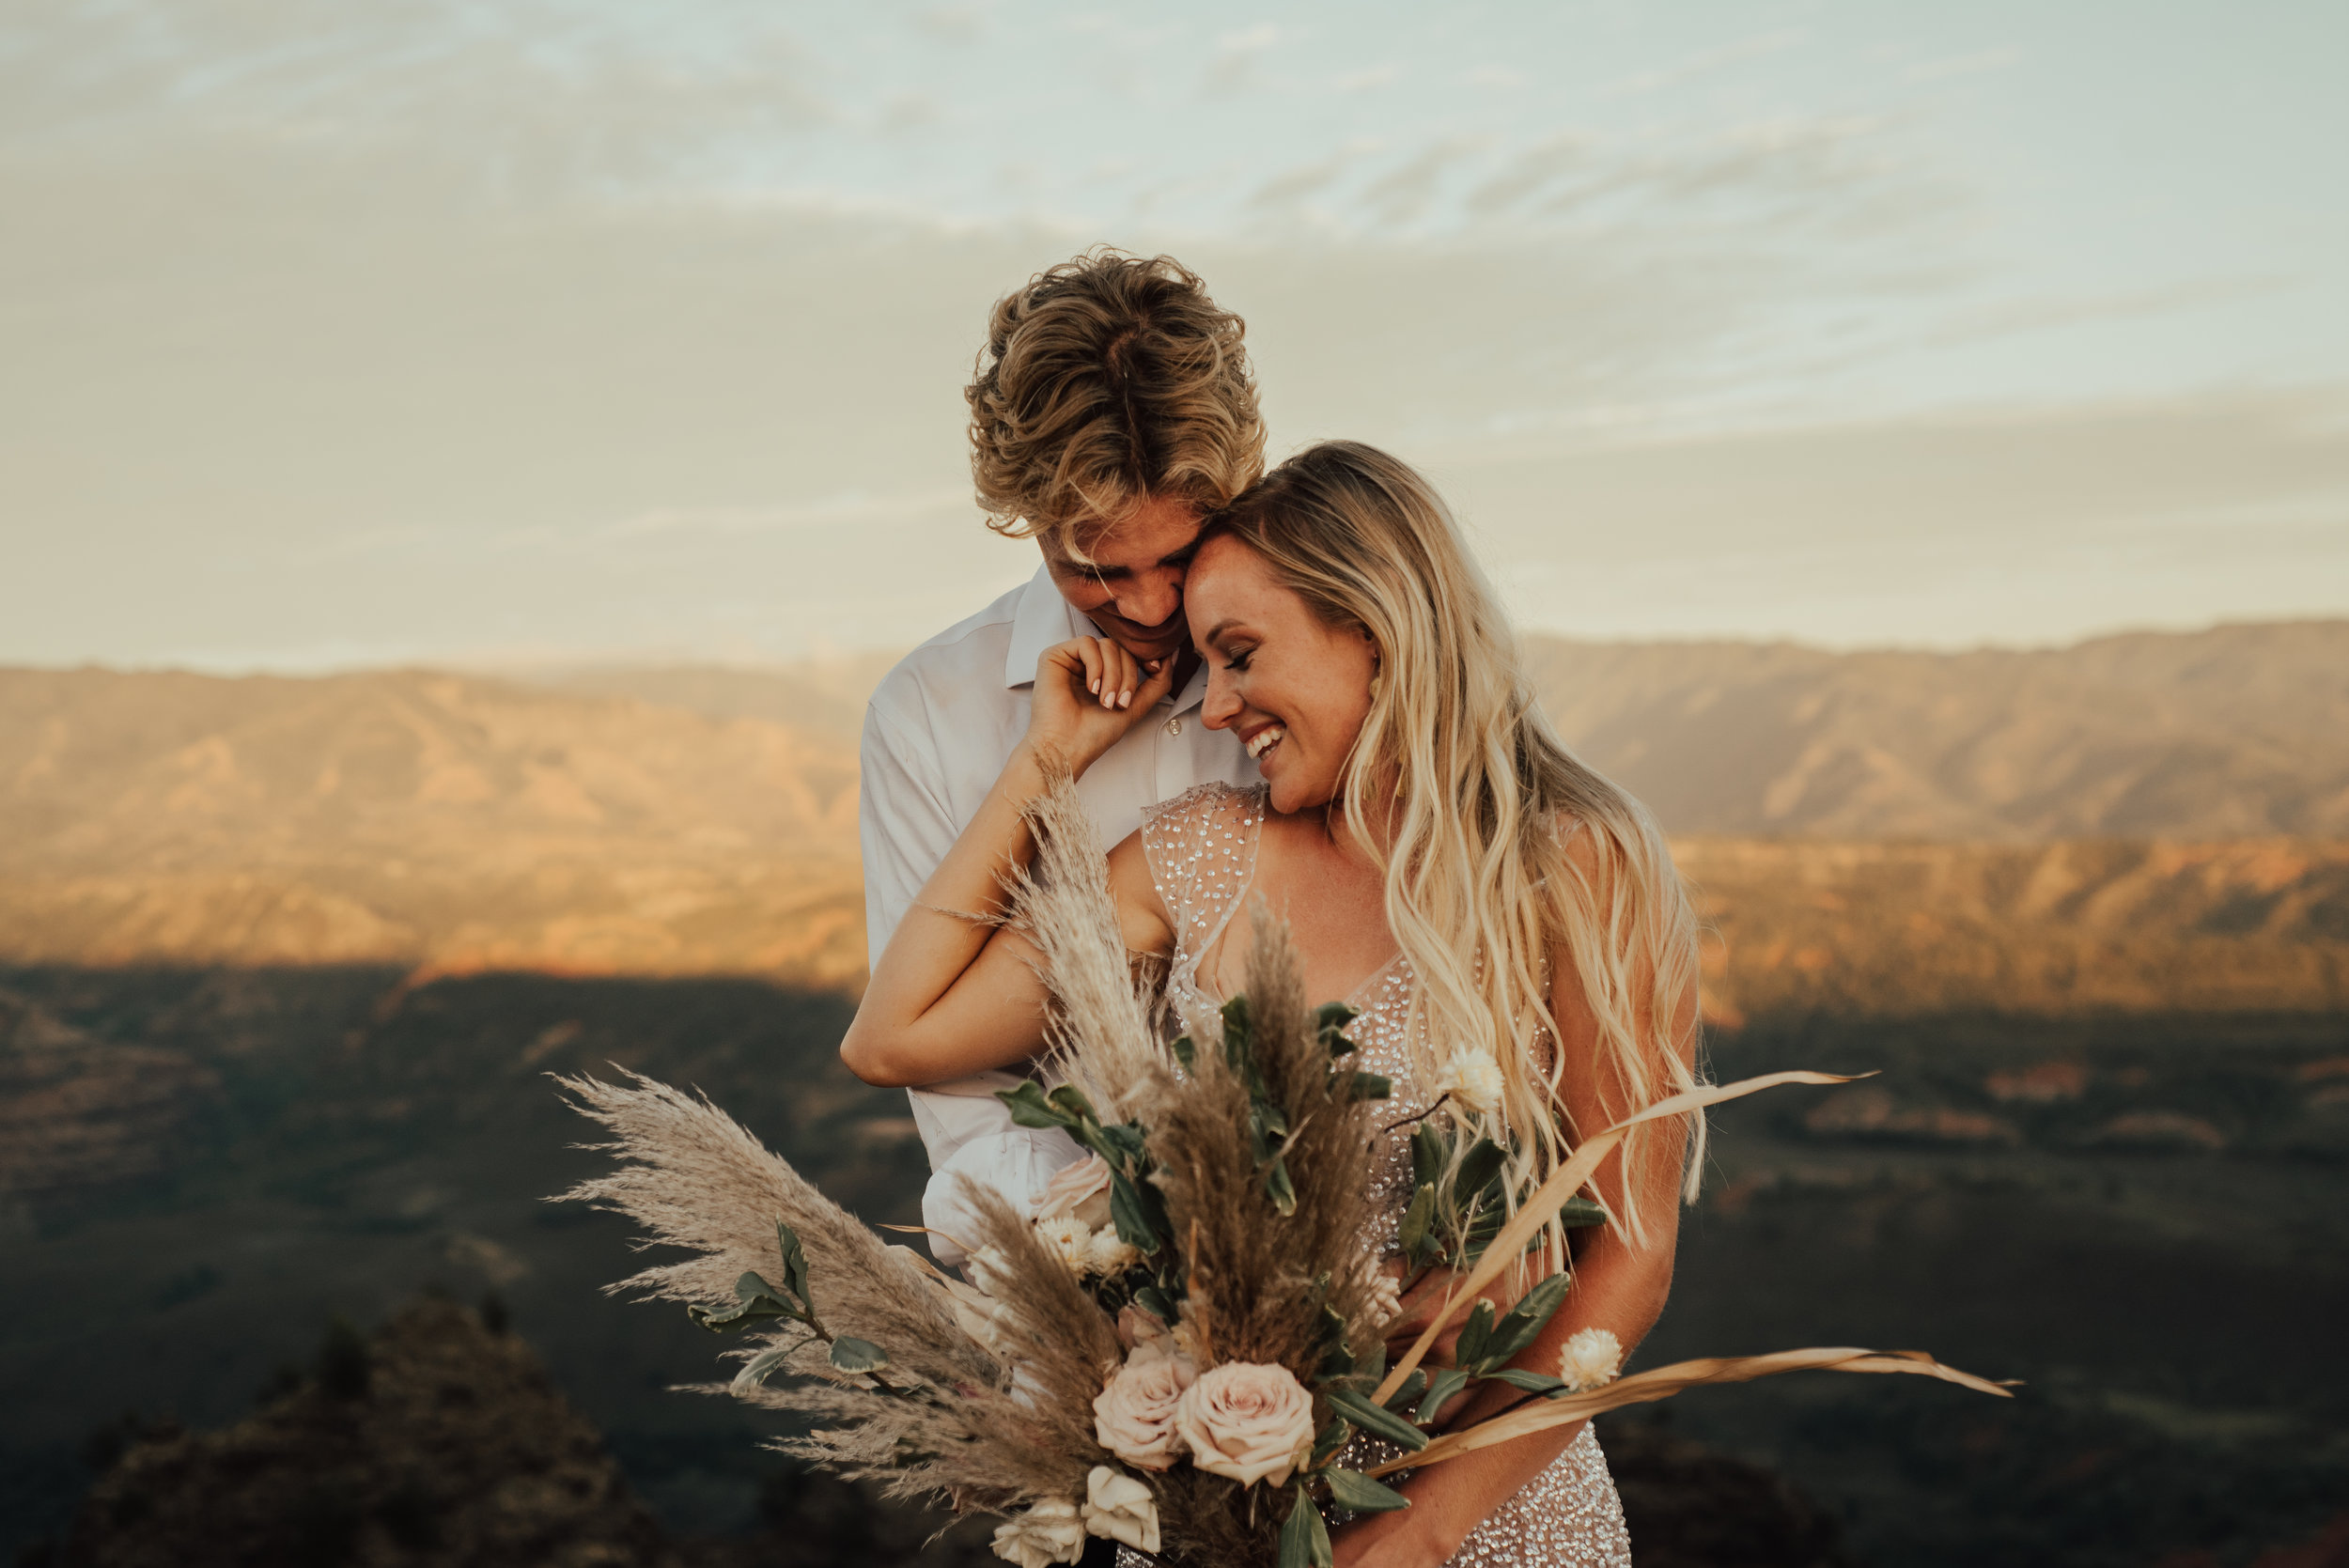 Waimea Canyon Elopement by SB Photographs01101001000111001110110110100100100001101001DSC_6832DSC_68320001101.jpg